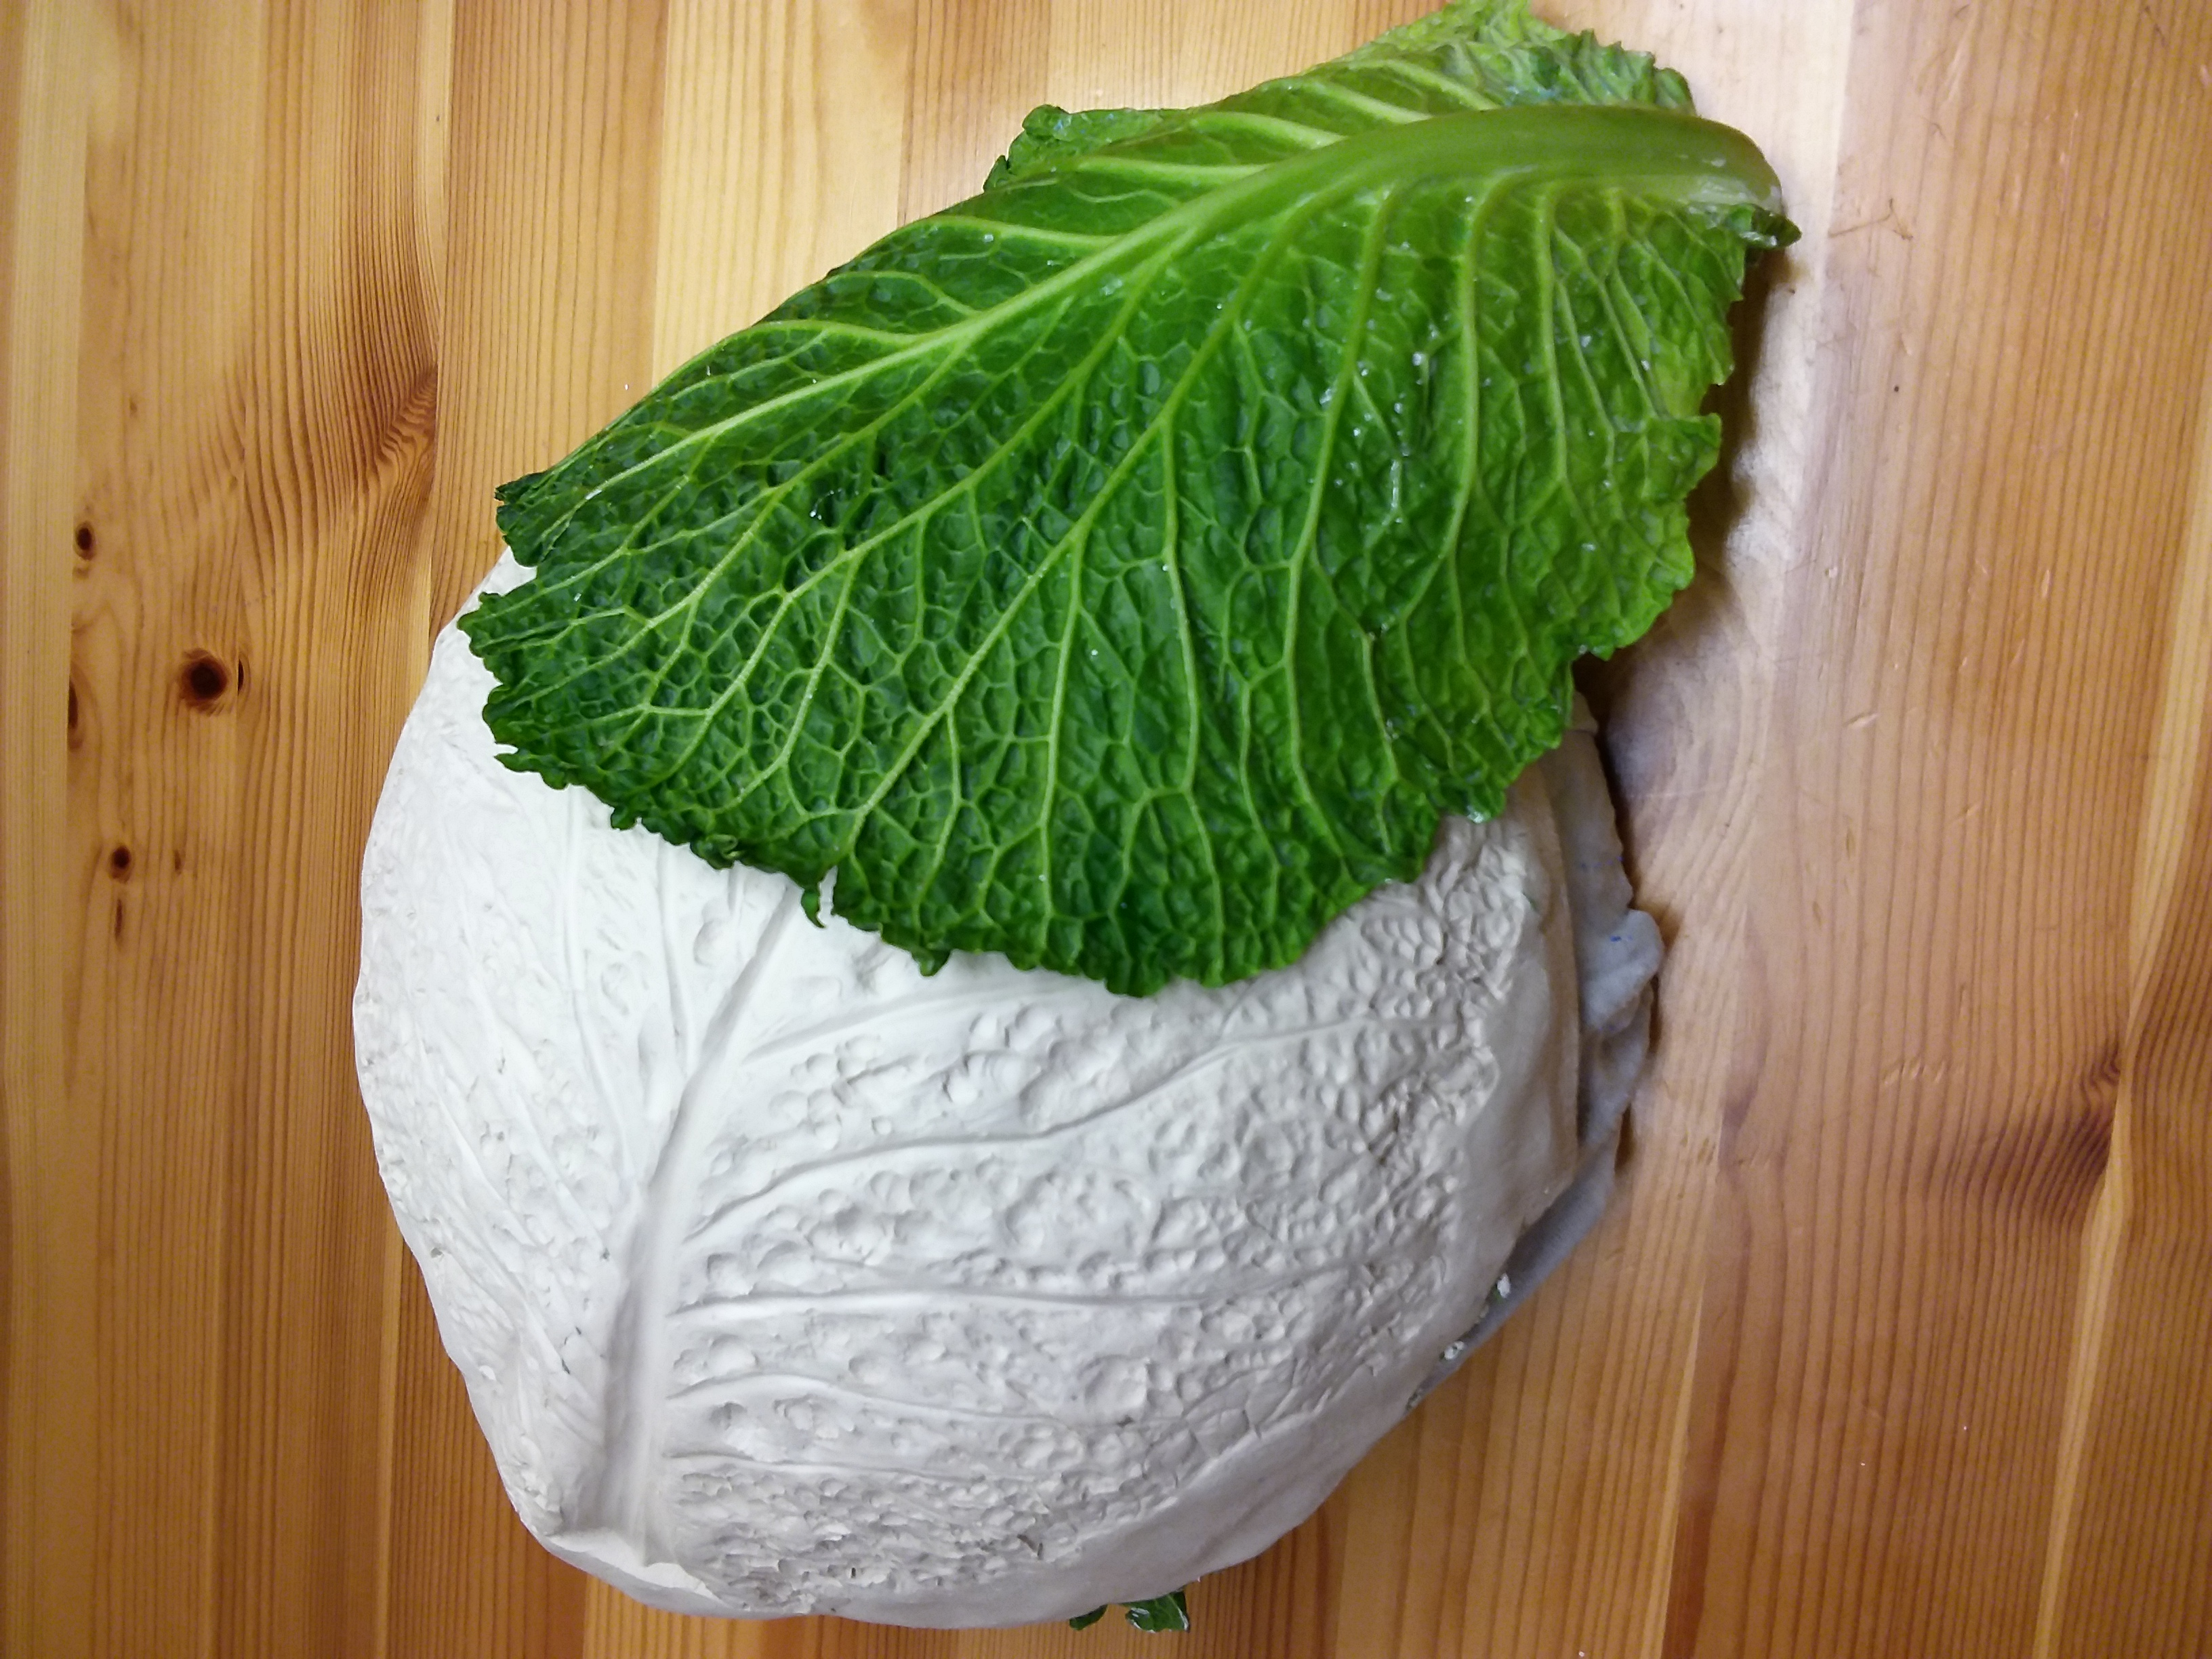 Cabbage moulds